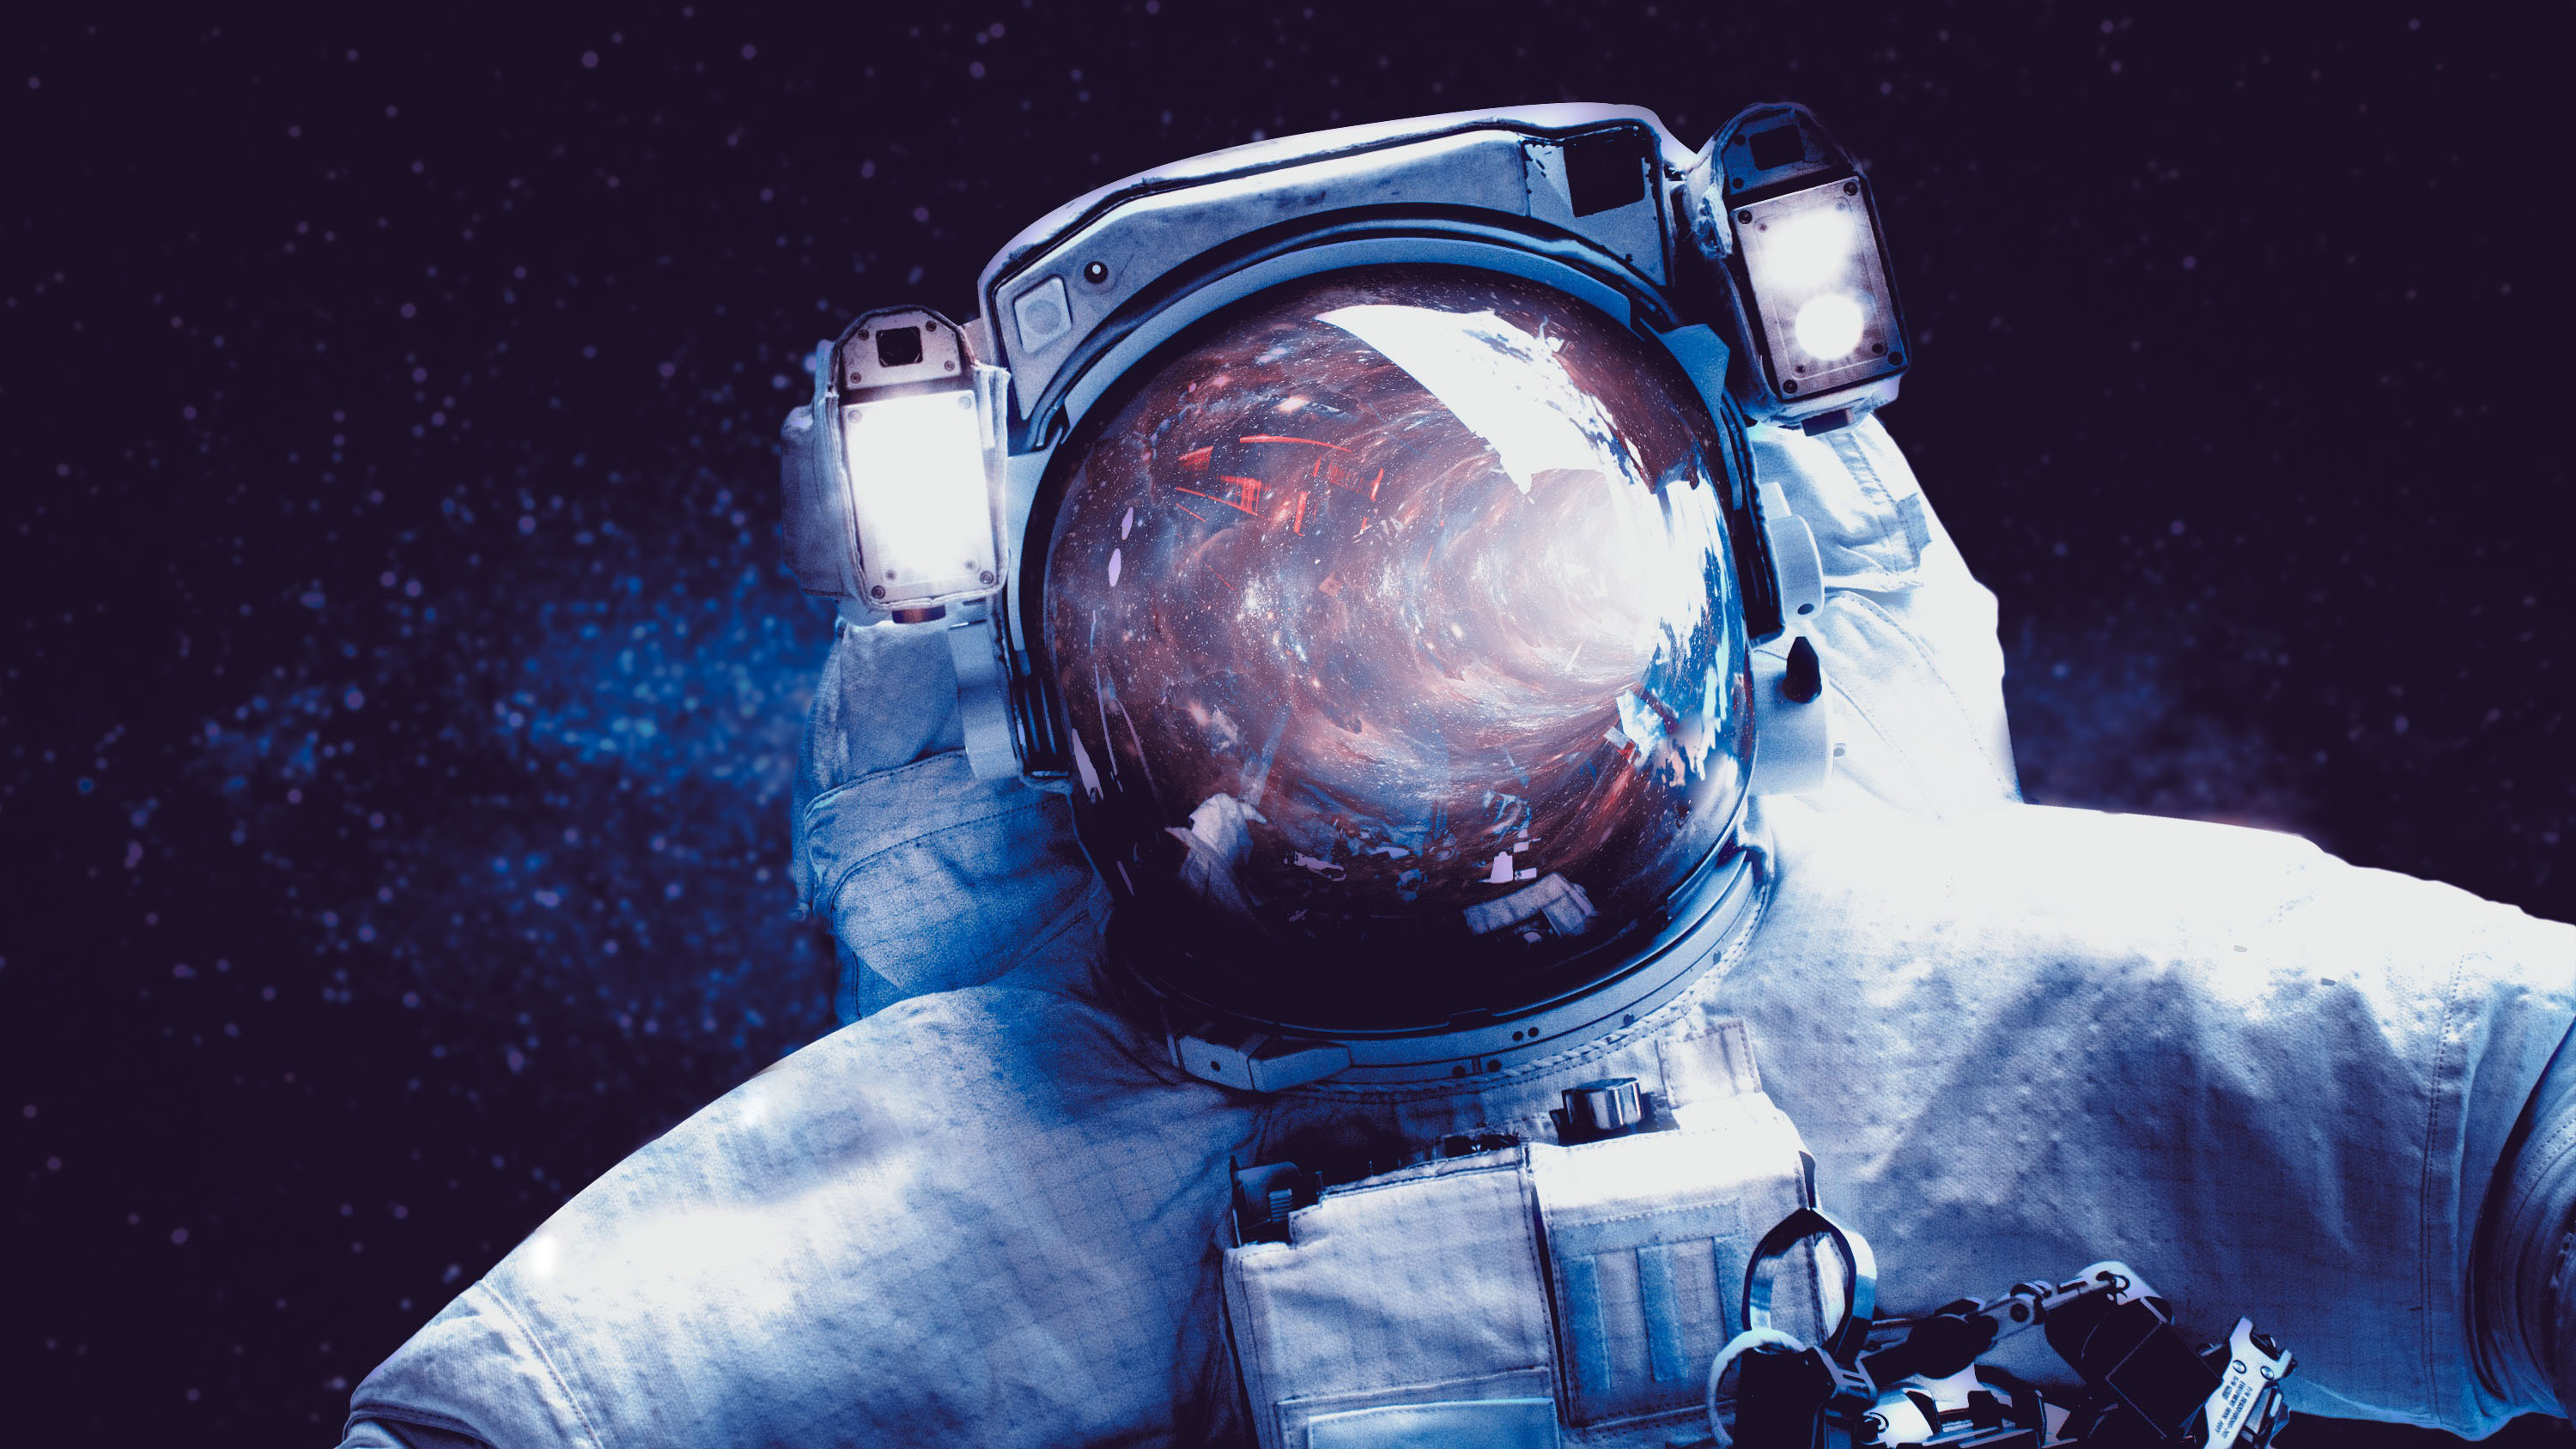 Wallpaper of Astronaut Space Art Sci Fi background HD image 3000x1688